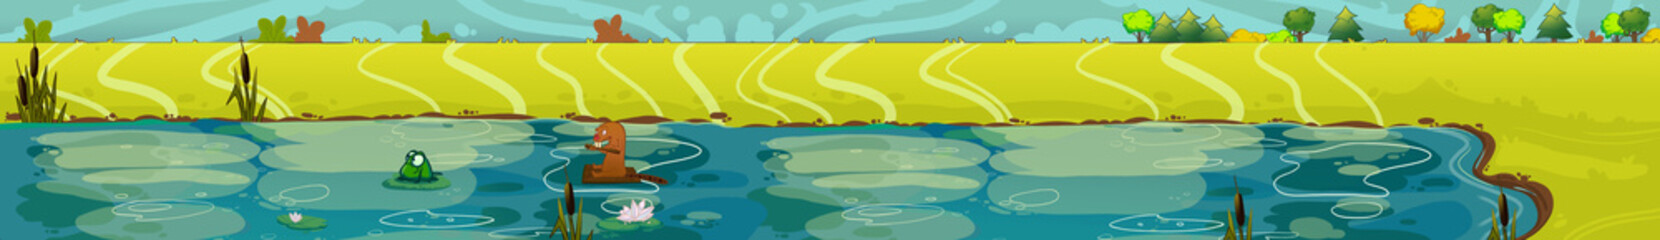 Summer lake view. Digital background raster illustration.